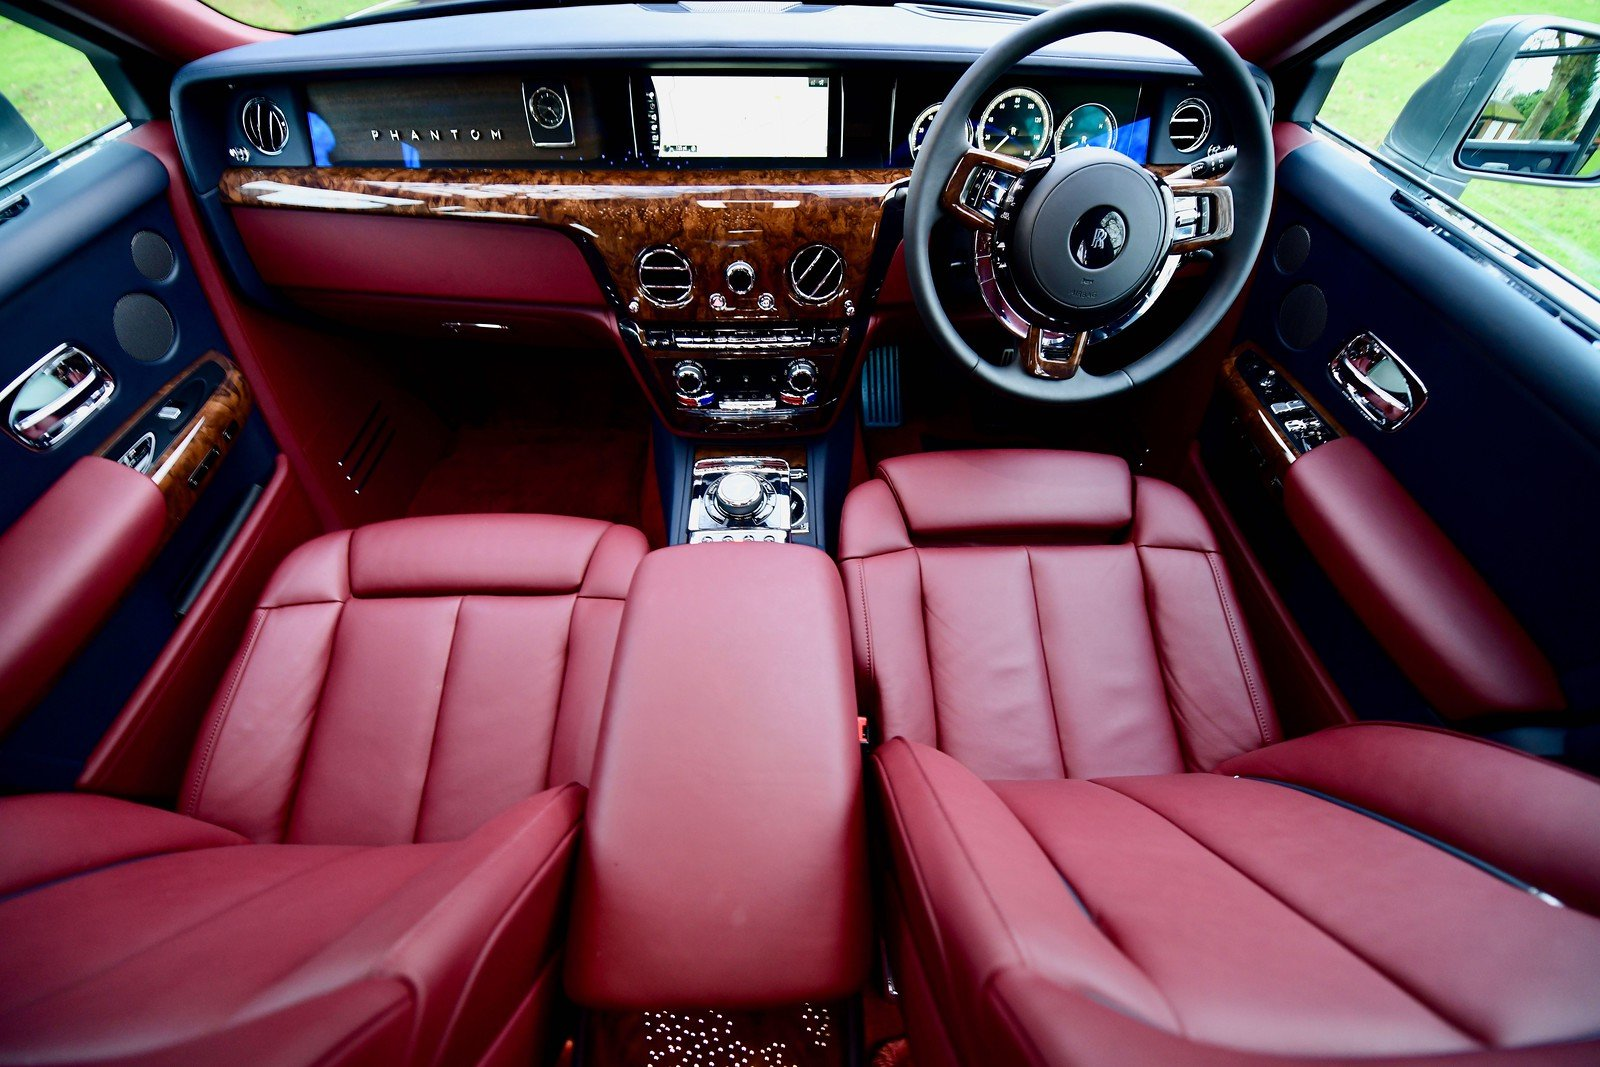 2019 Rolls Royce Phantom 8 For Sale (picture 4 of 6)